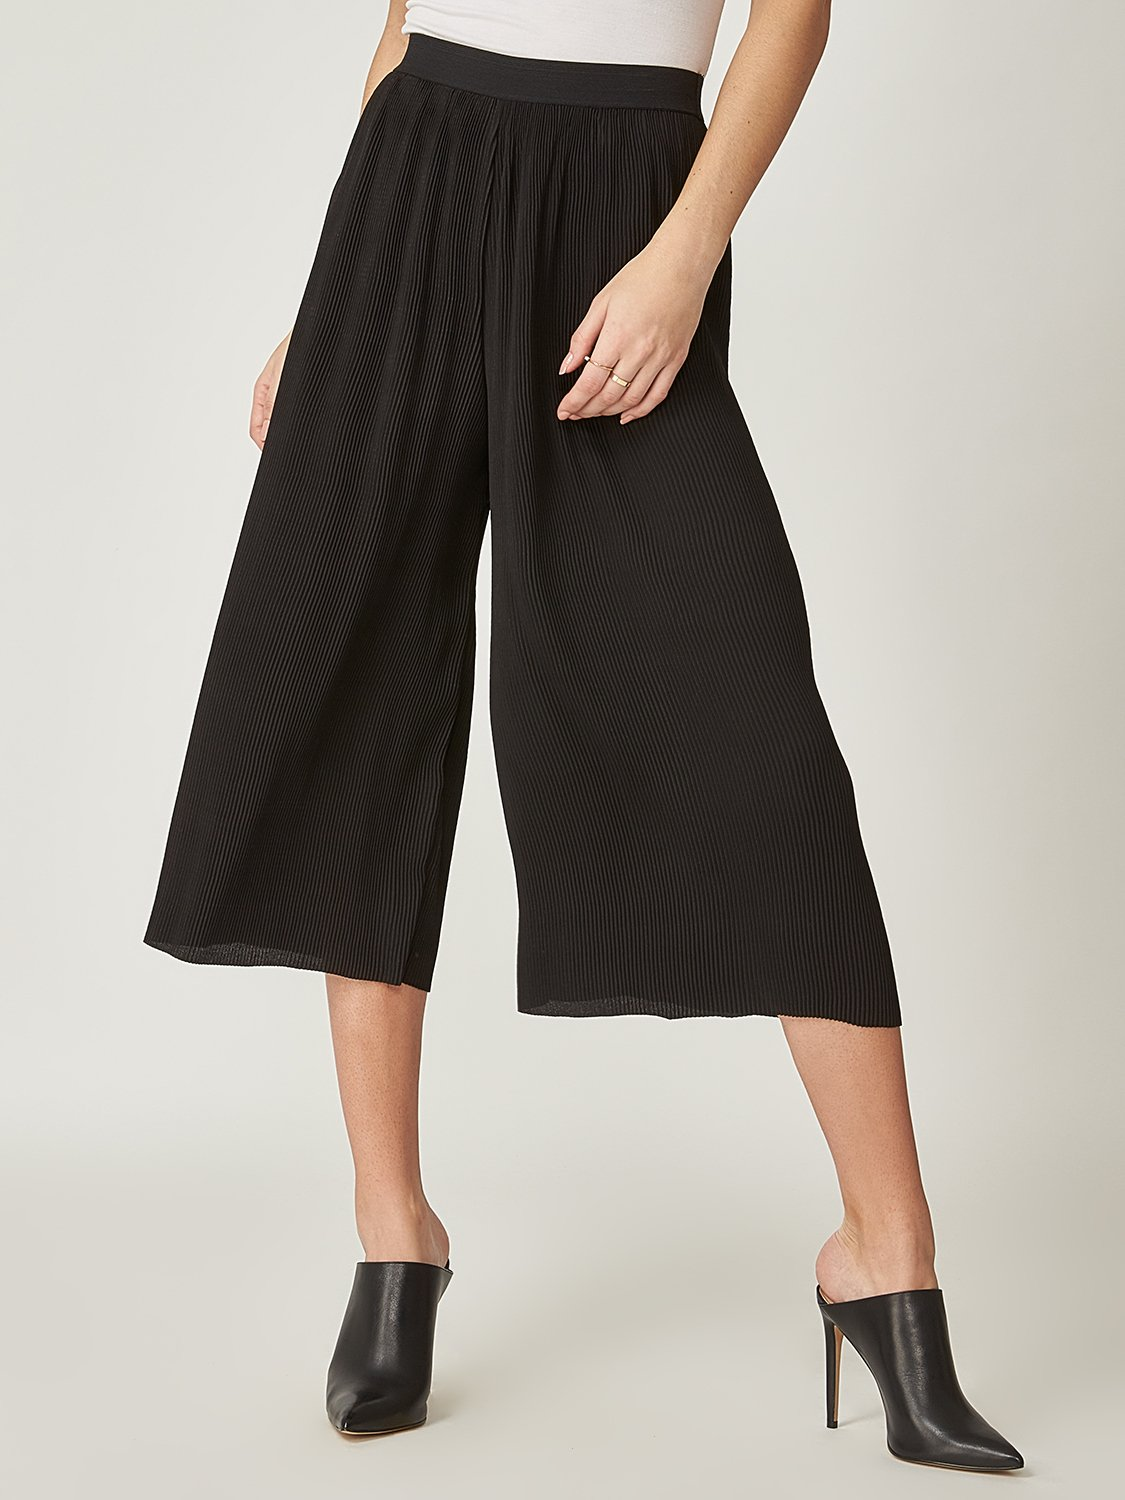 Elastic Waist Pleated Gaucho Pants